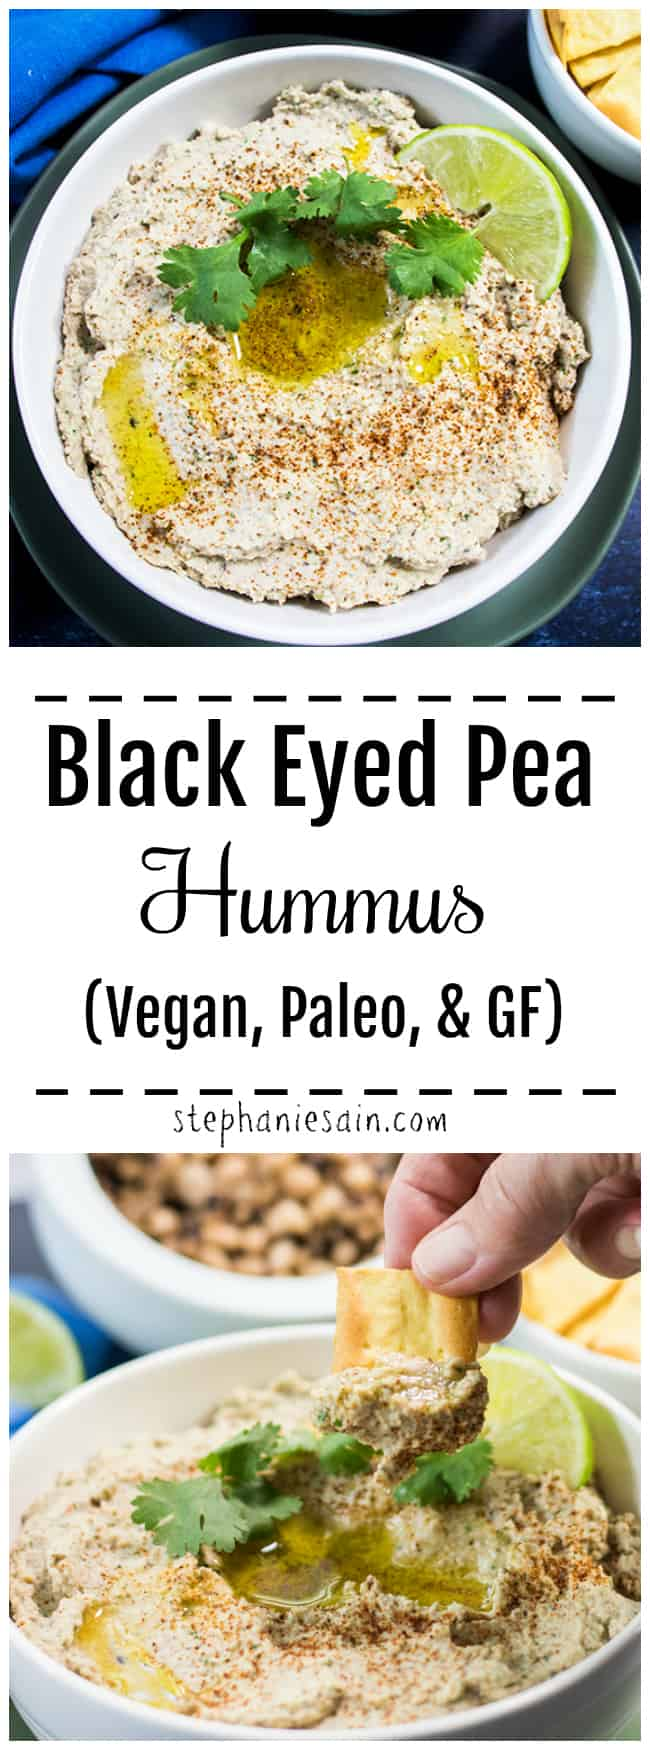 This Black Eyed Pea Hummus is super easy to make, thick, creamy & delicious. The perfect way to switch up hummus & your snacking routine. Great served with crackers, veggies, chips & so much more. Vegan, Paleo, and Gluten Free.